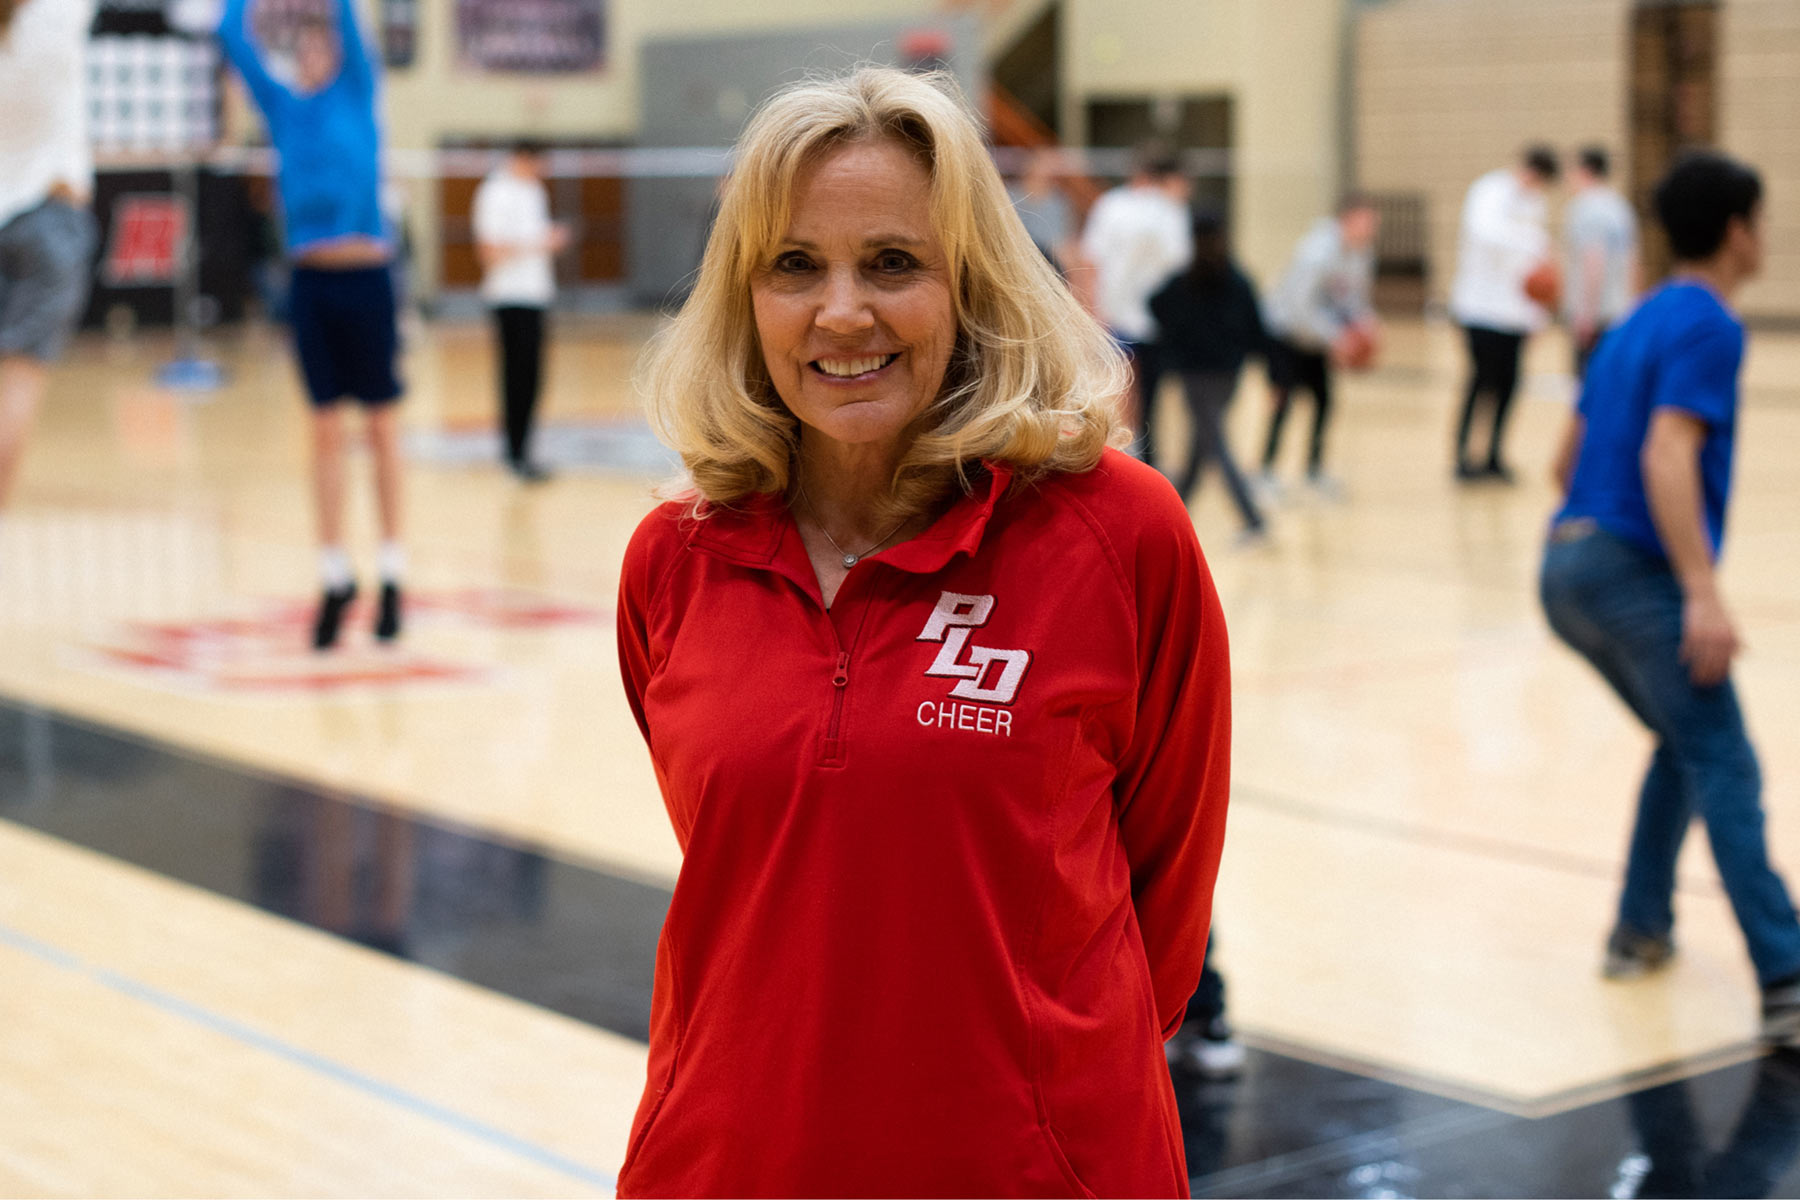 Donna Martin wears her PLD cheer sweatshirt and smiles in a busy gymnasium.